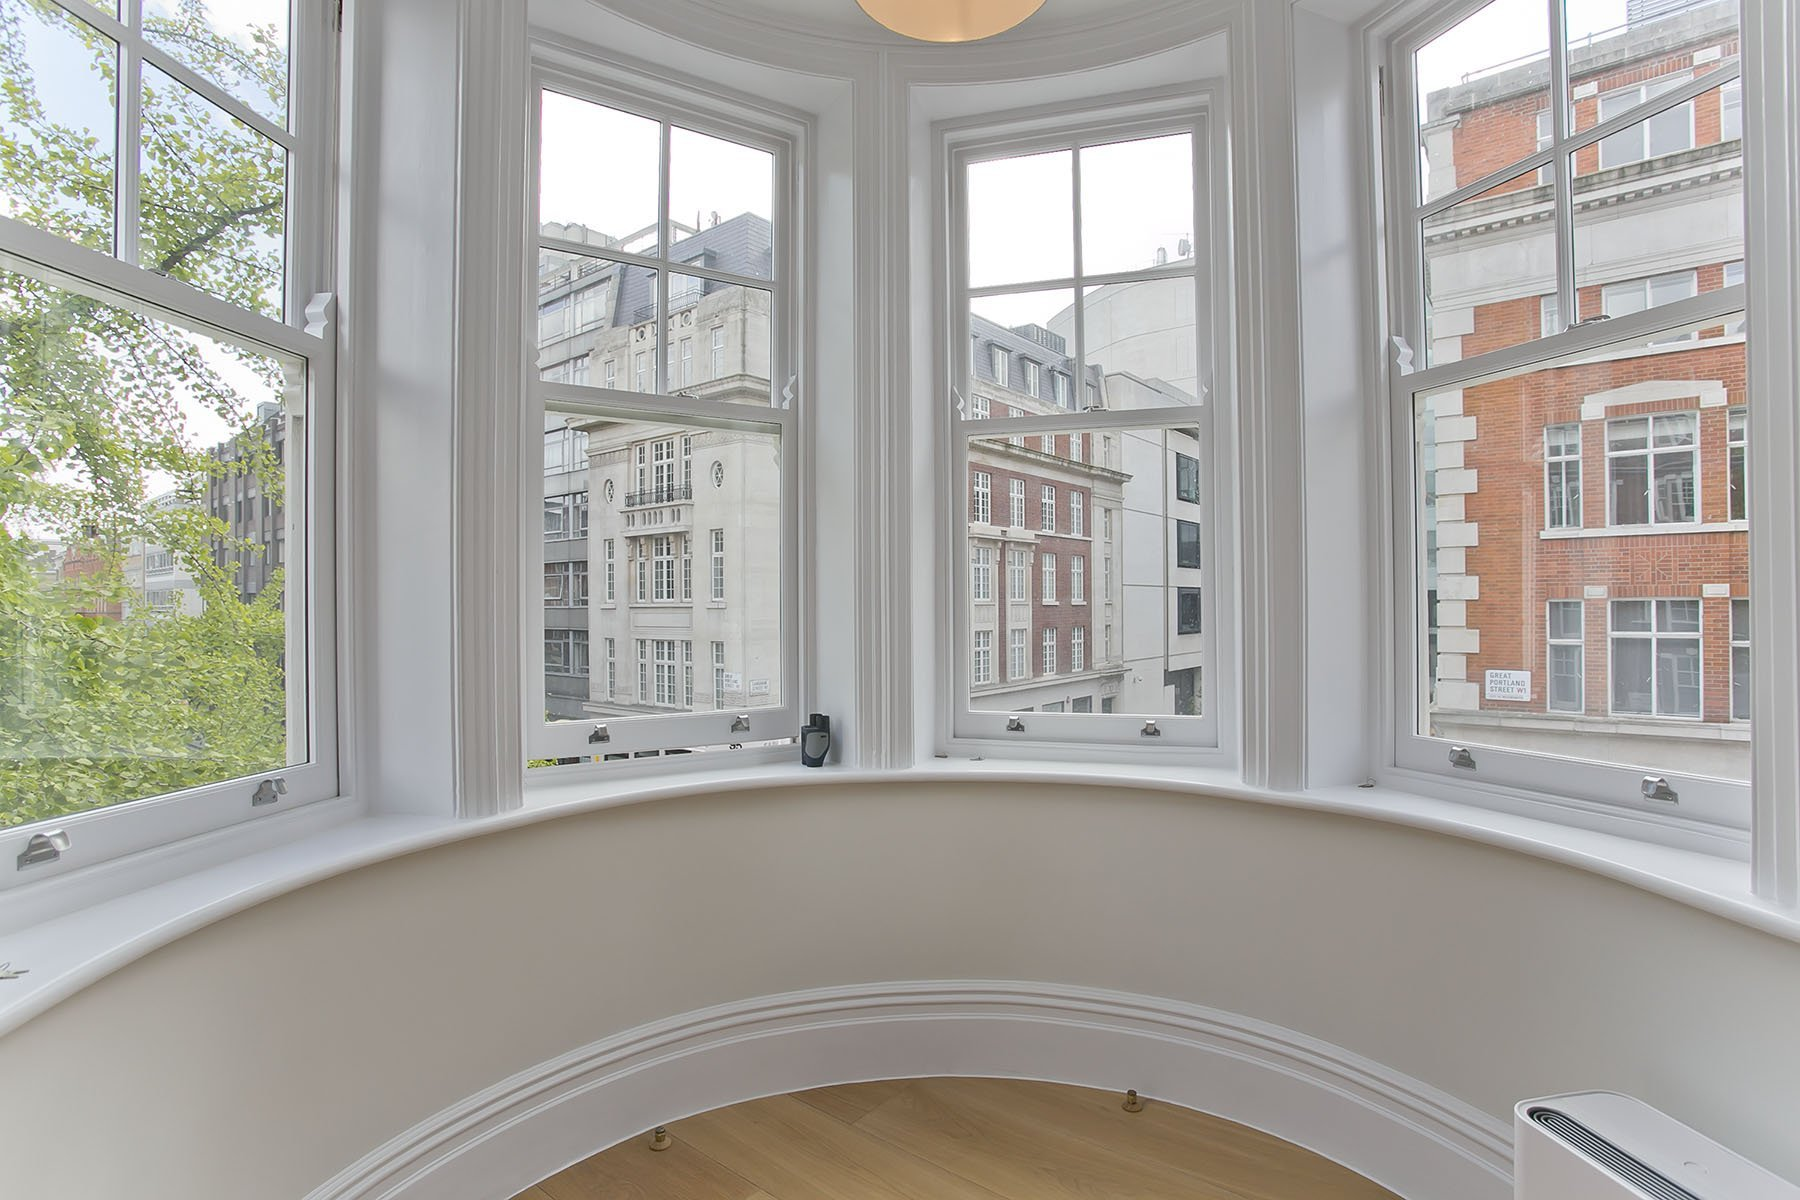 painting service in Marylebone with white painted walls and bay window